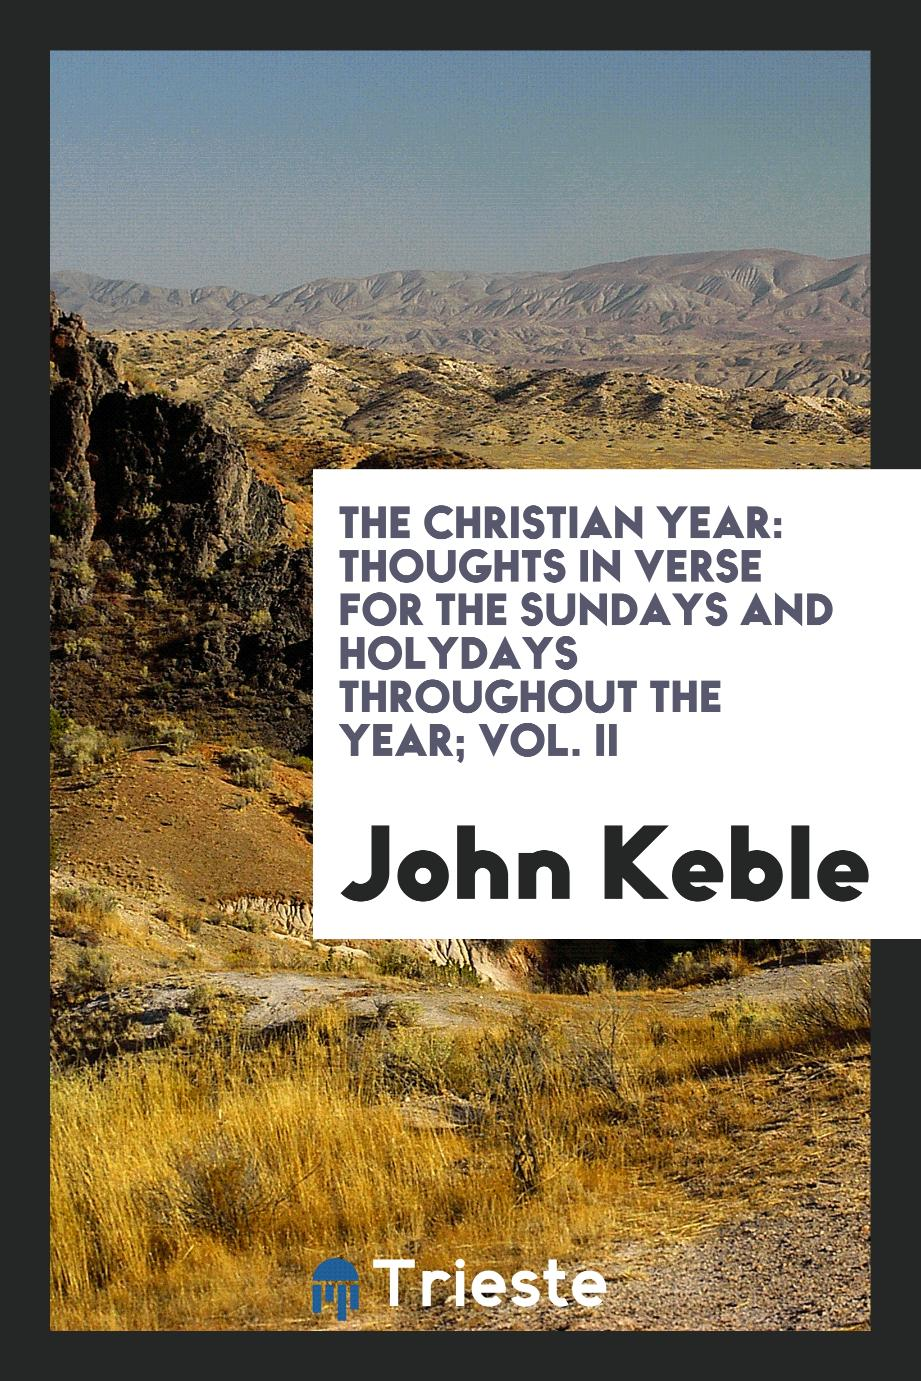 The Christian year: Thoughts in verse for the Sundays and Holydays throughout the year; Vol. II